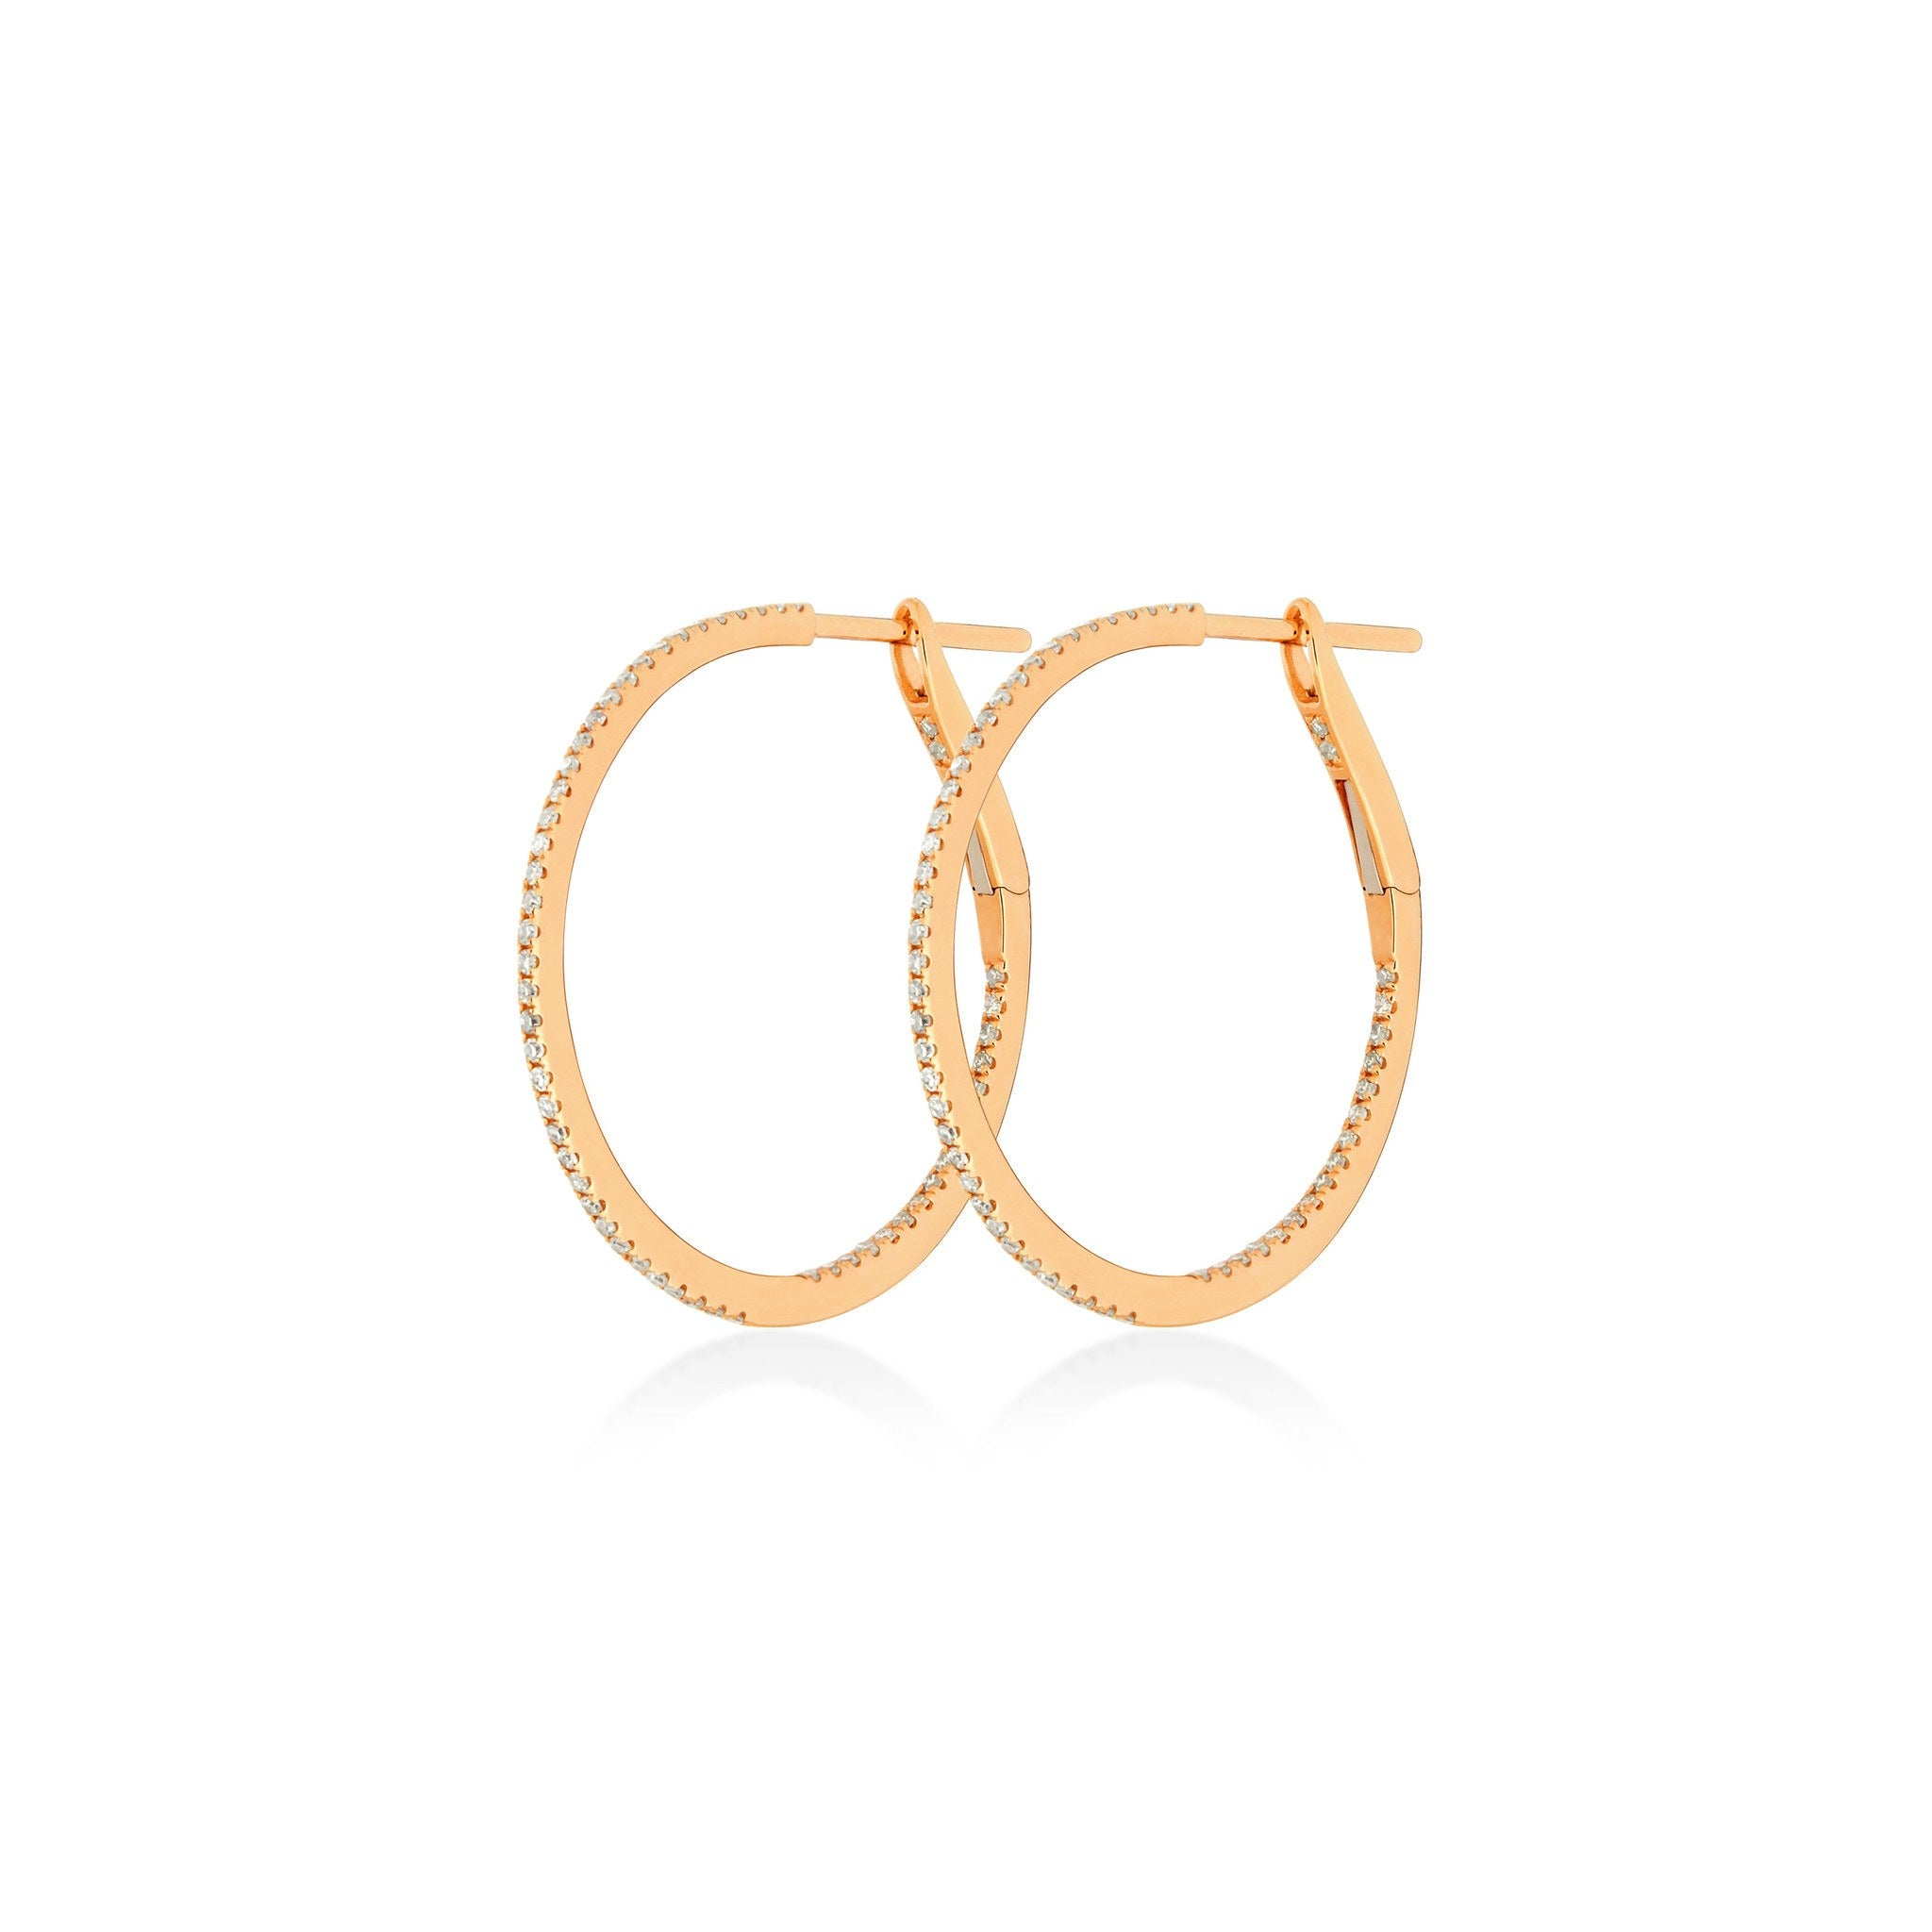 Earrings - 1 Inch/25 MM Hoops